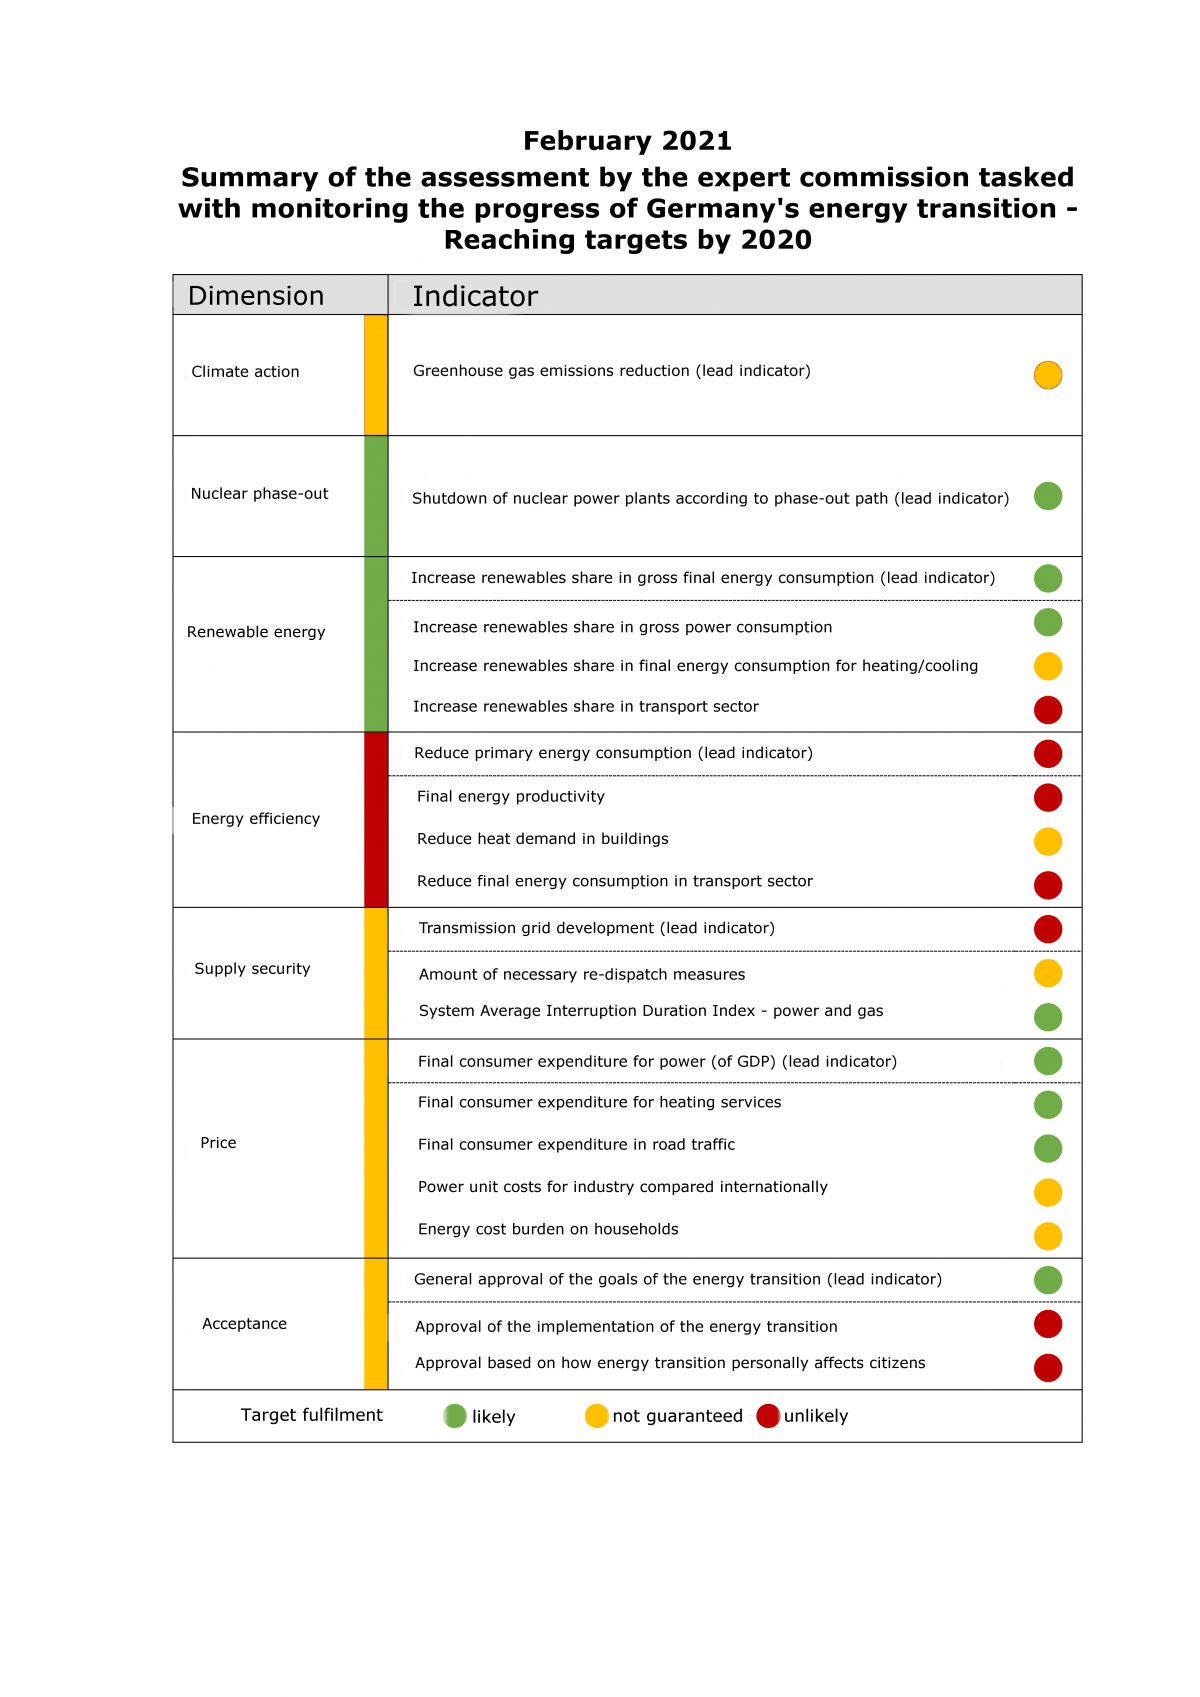 Chart shows summary of the assessment by the expert commission tasked with monitoring the progress of Germany's energy transition - reaching targets by 2020/22. Source - expert commission on monitoring the German energy transition 2021.